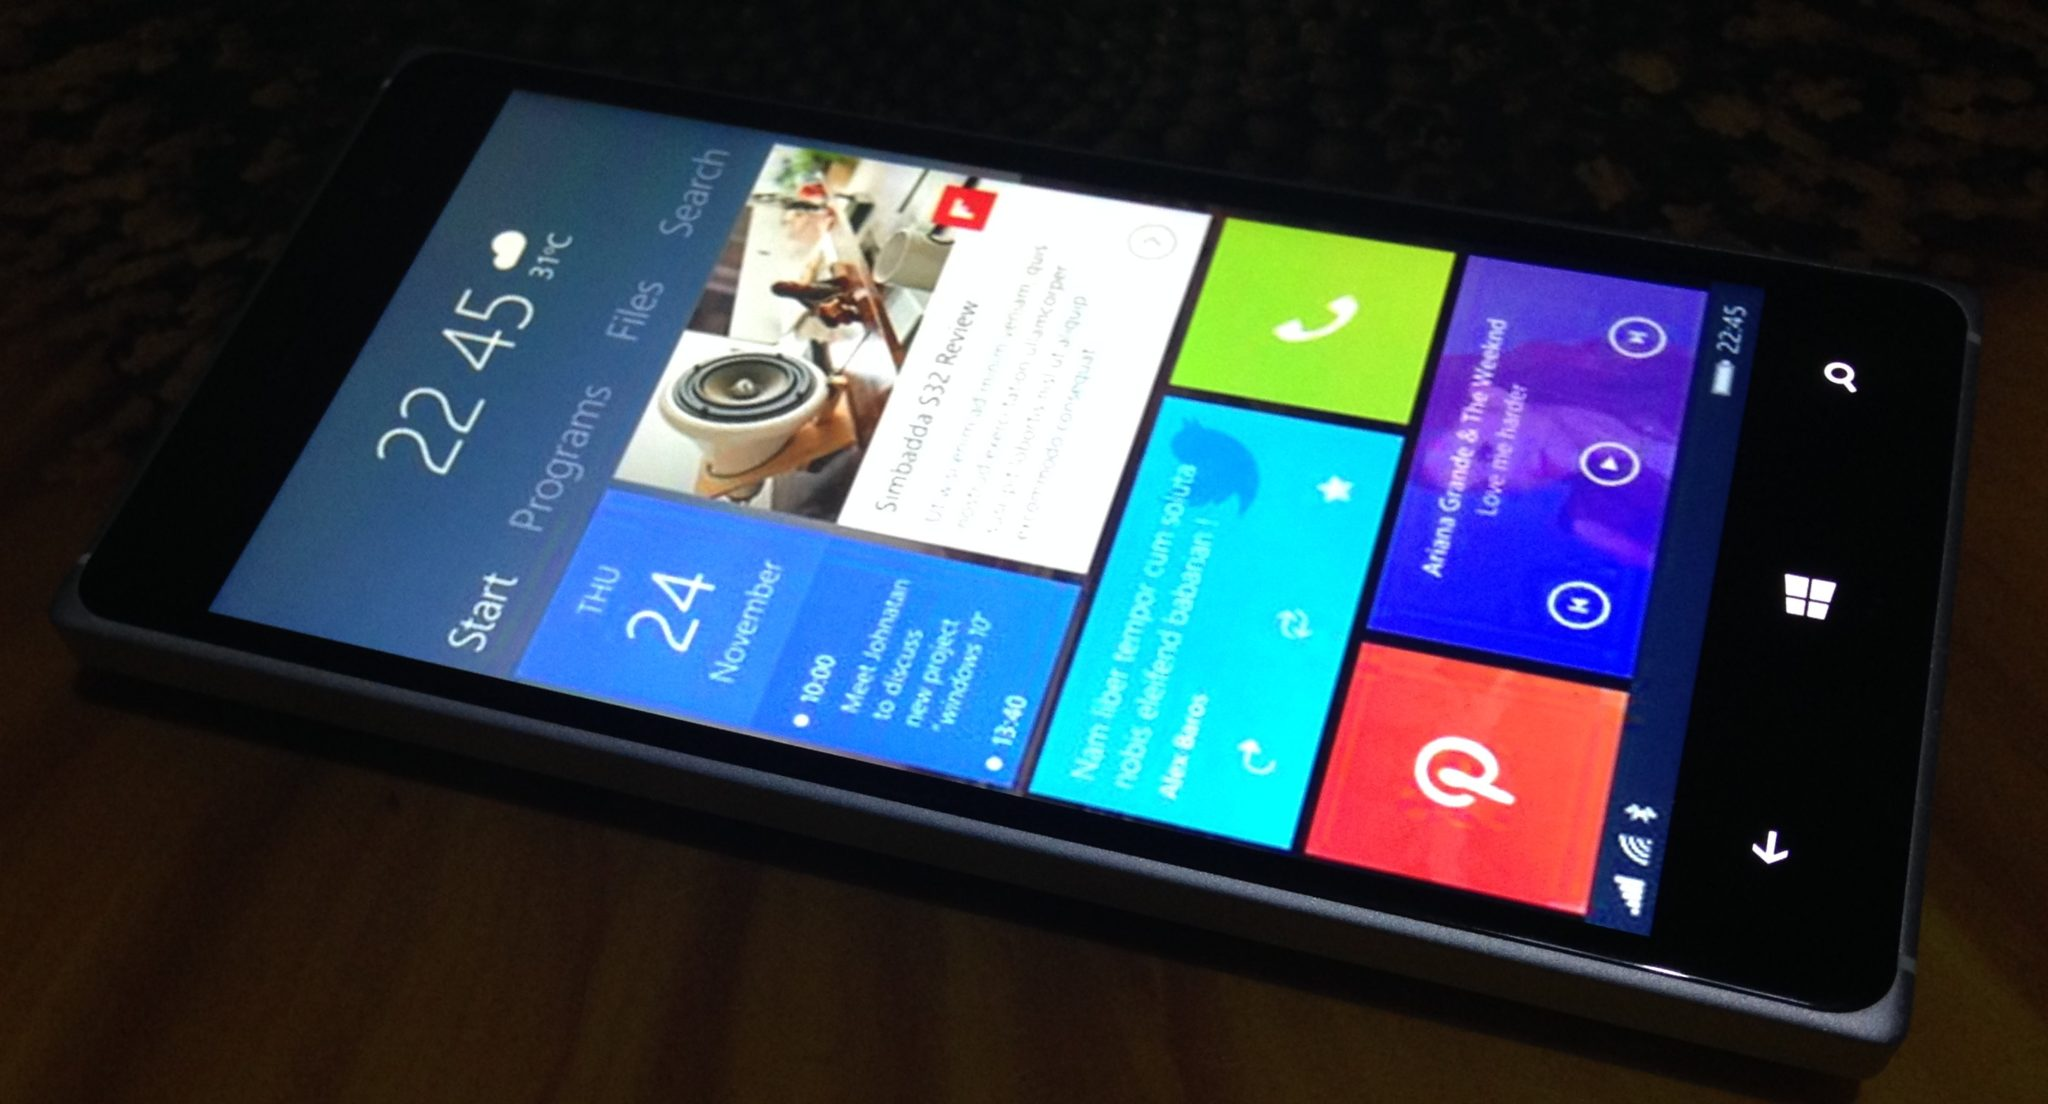 Microsoft ends push notifications for Windows 7 & 8 smartphones, some devices spared